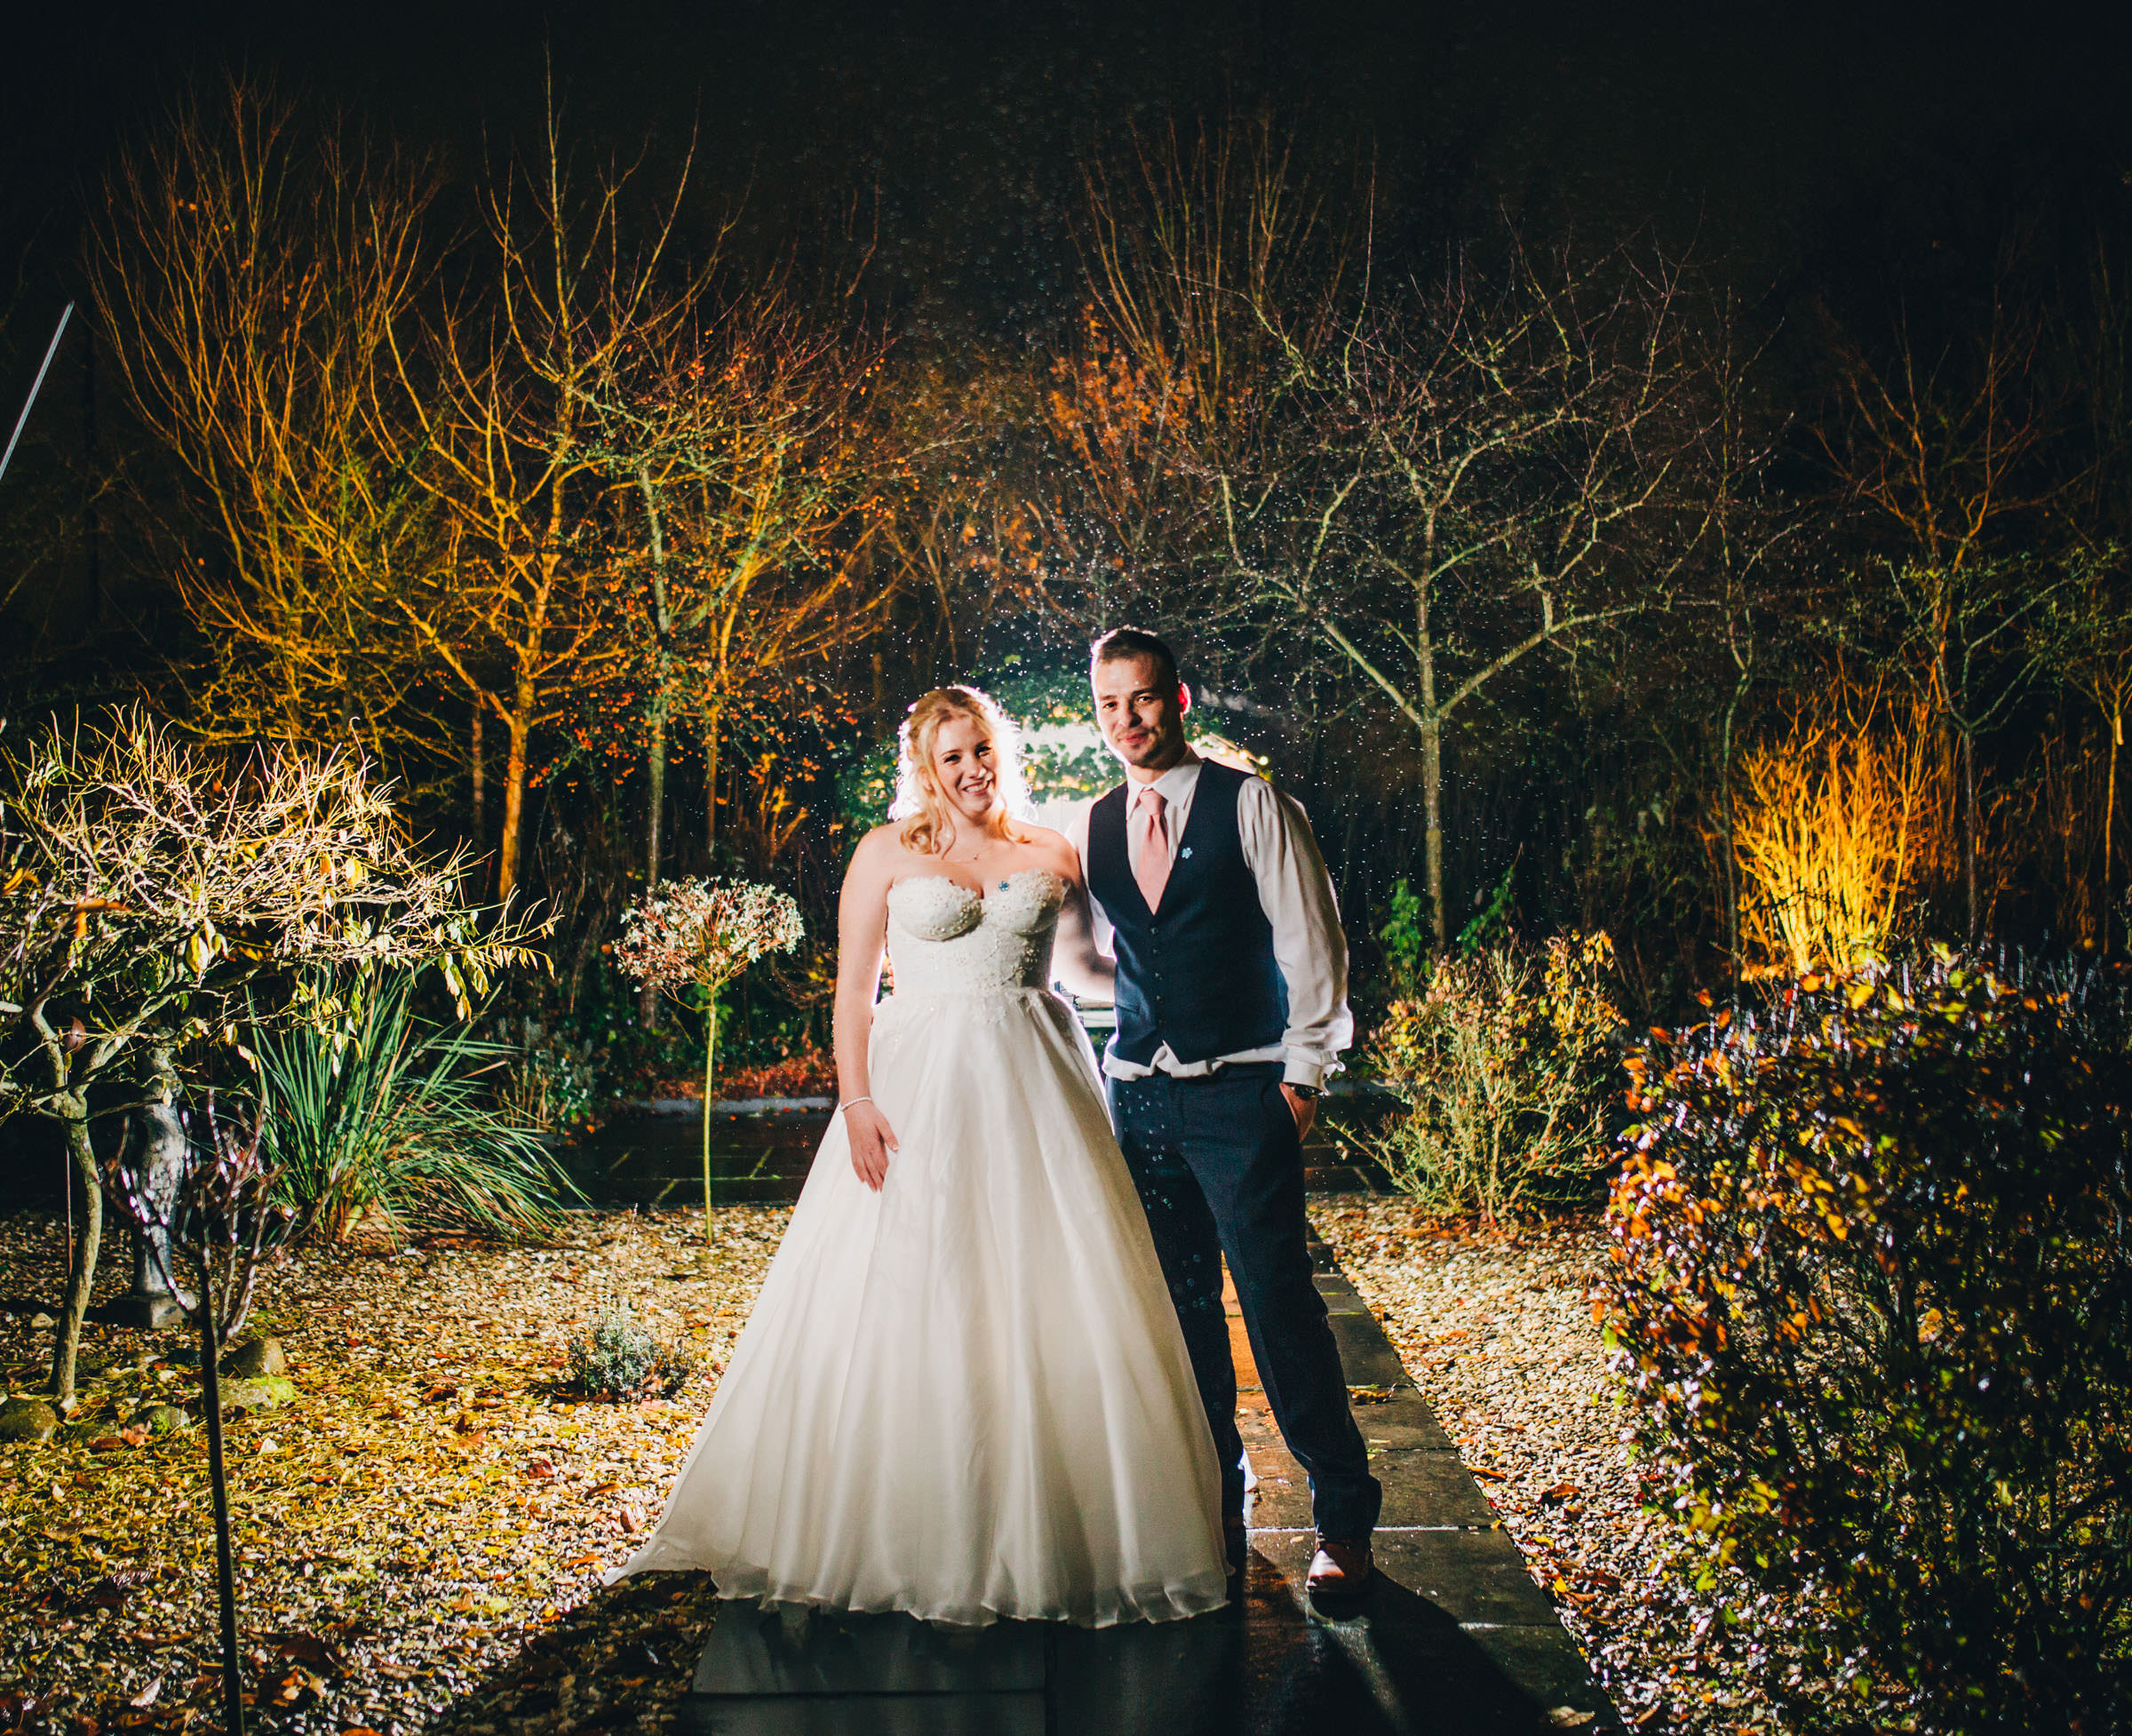 off camera flash pictures - bride and groom